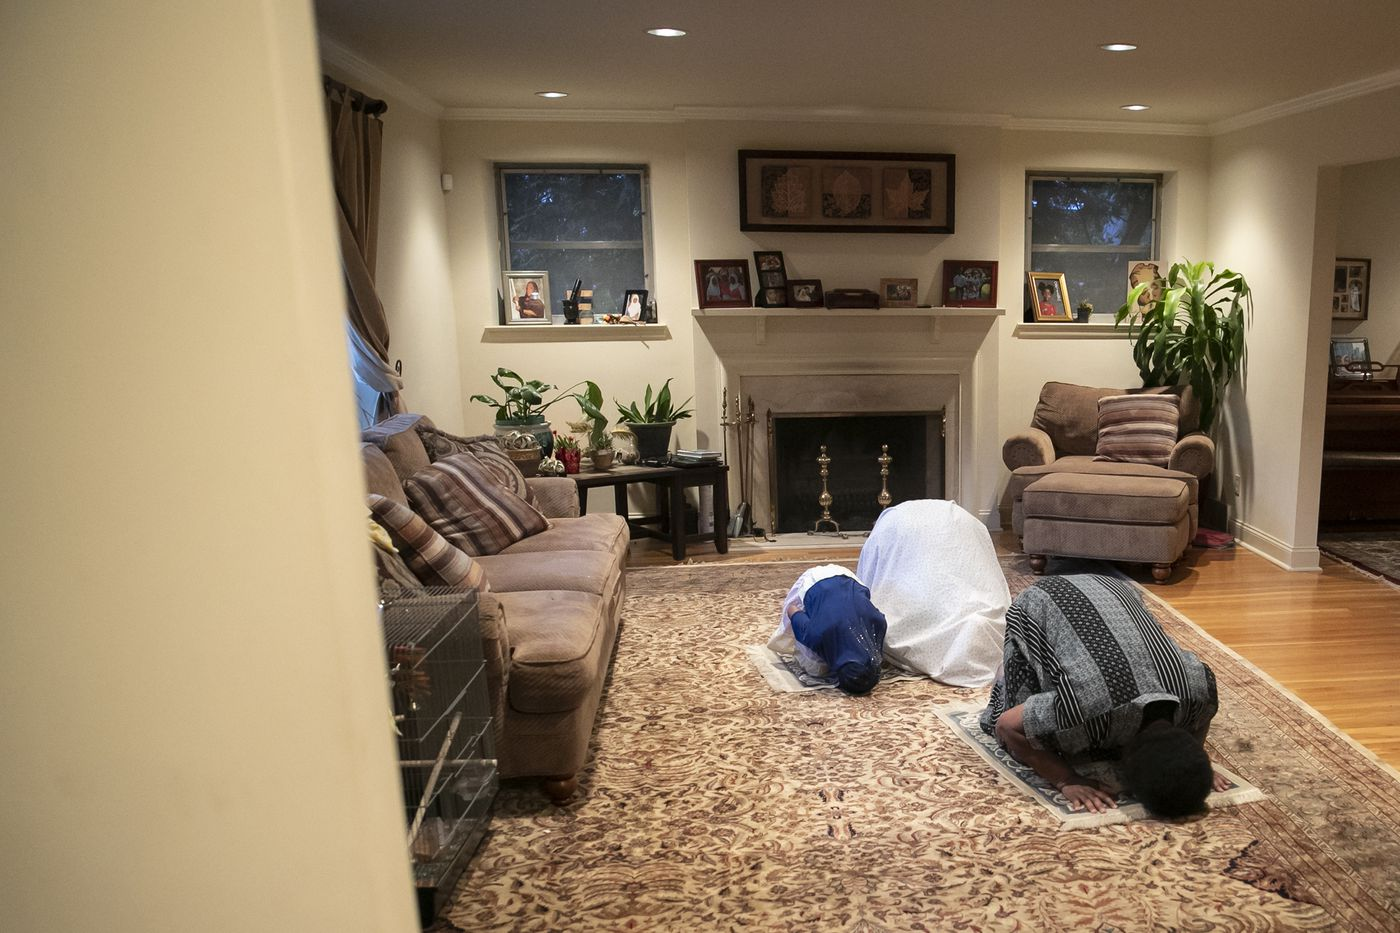 For Philadelphia-Area Muslims, Breaking their Daily Fast Brings a Mix of Emotions